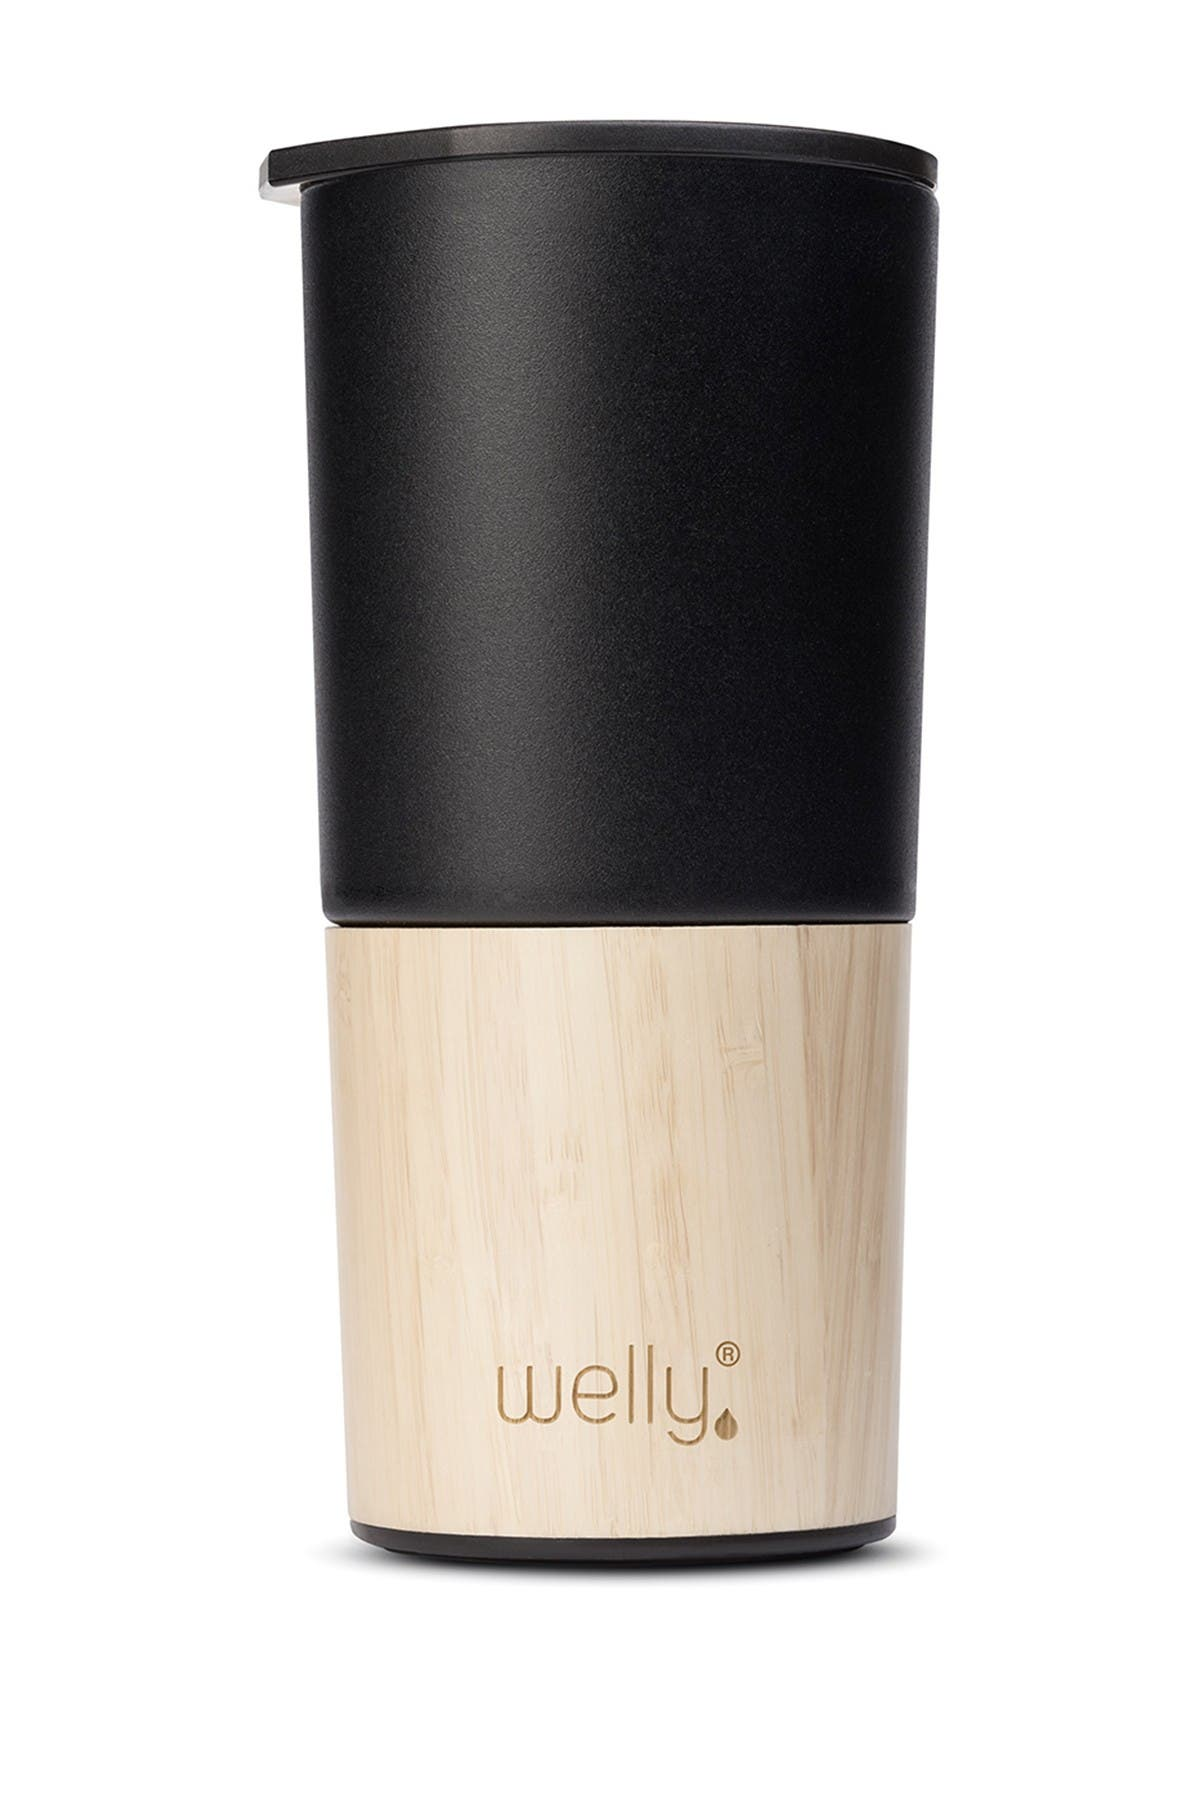 Image of Welly Tumbler 16oz - Black